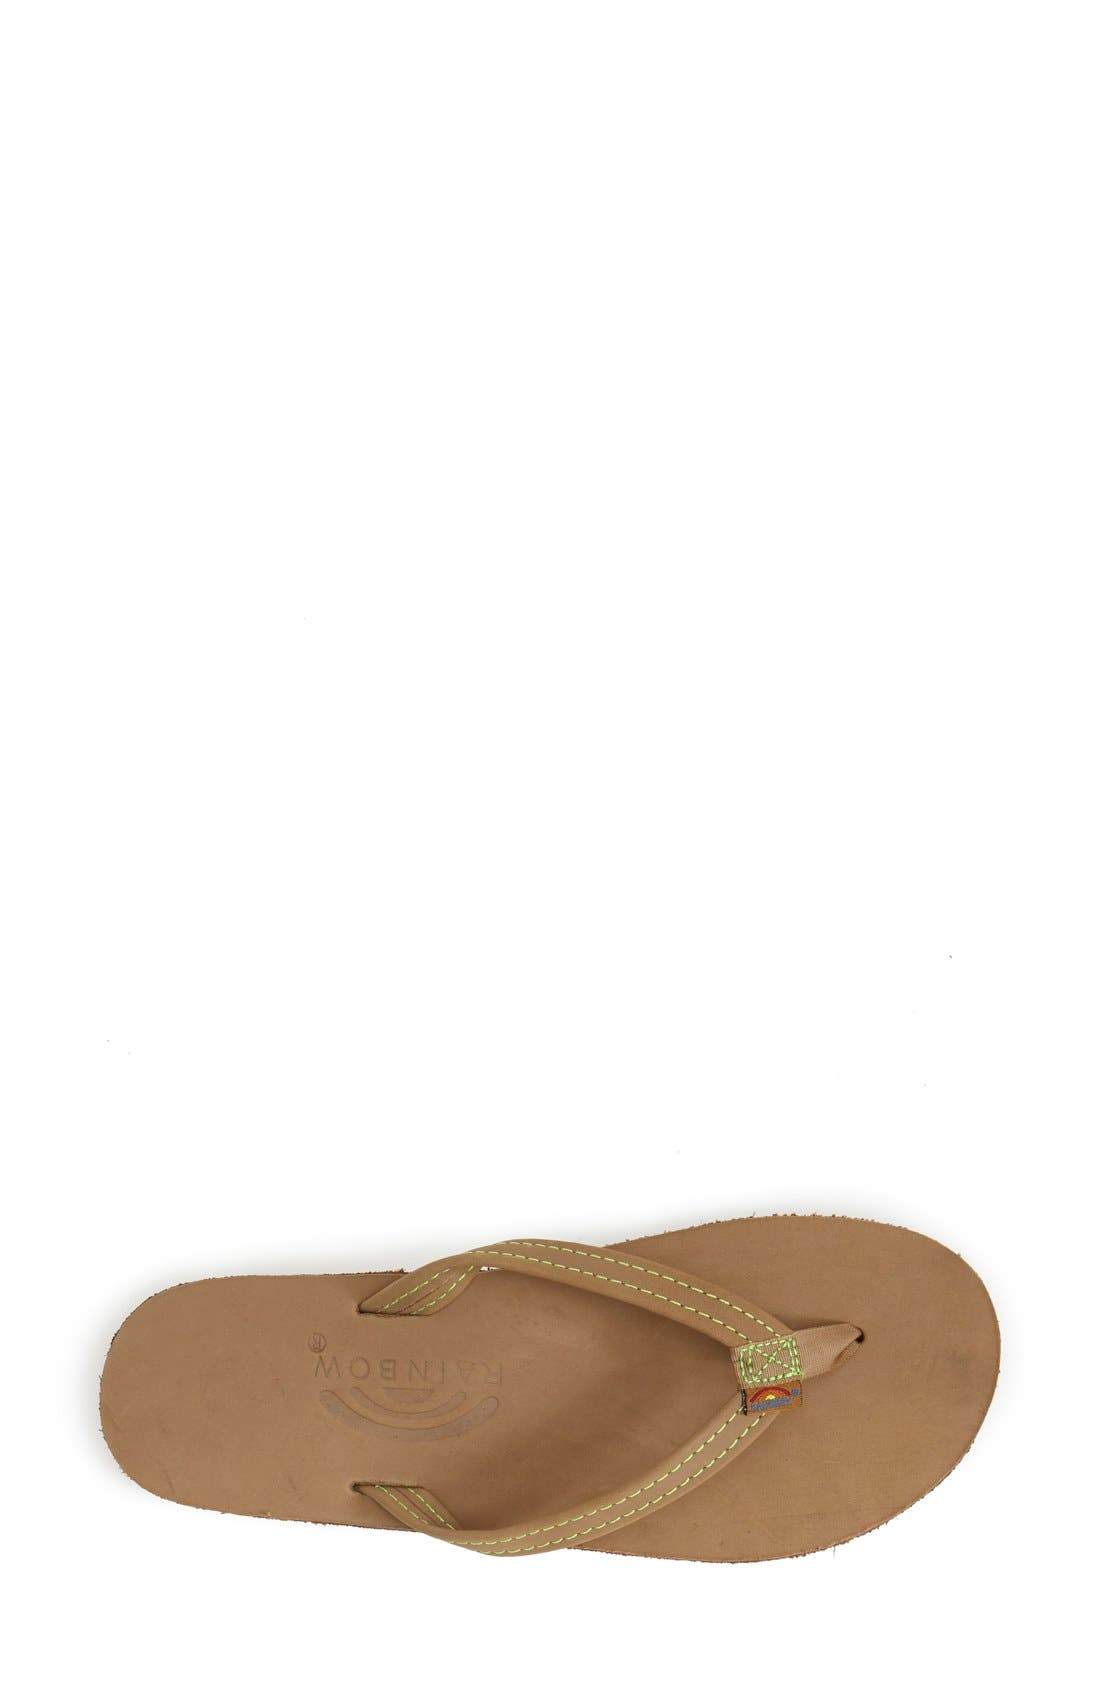 Rainbow Double Layer Thong Sandal,                             Alternate thumbnail 2, color,                             320